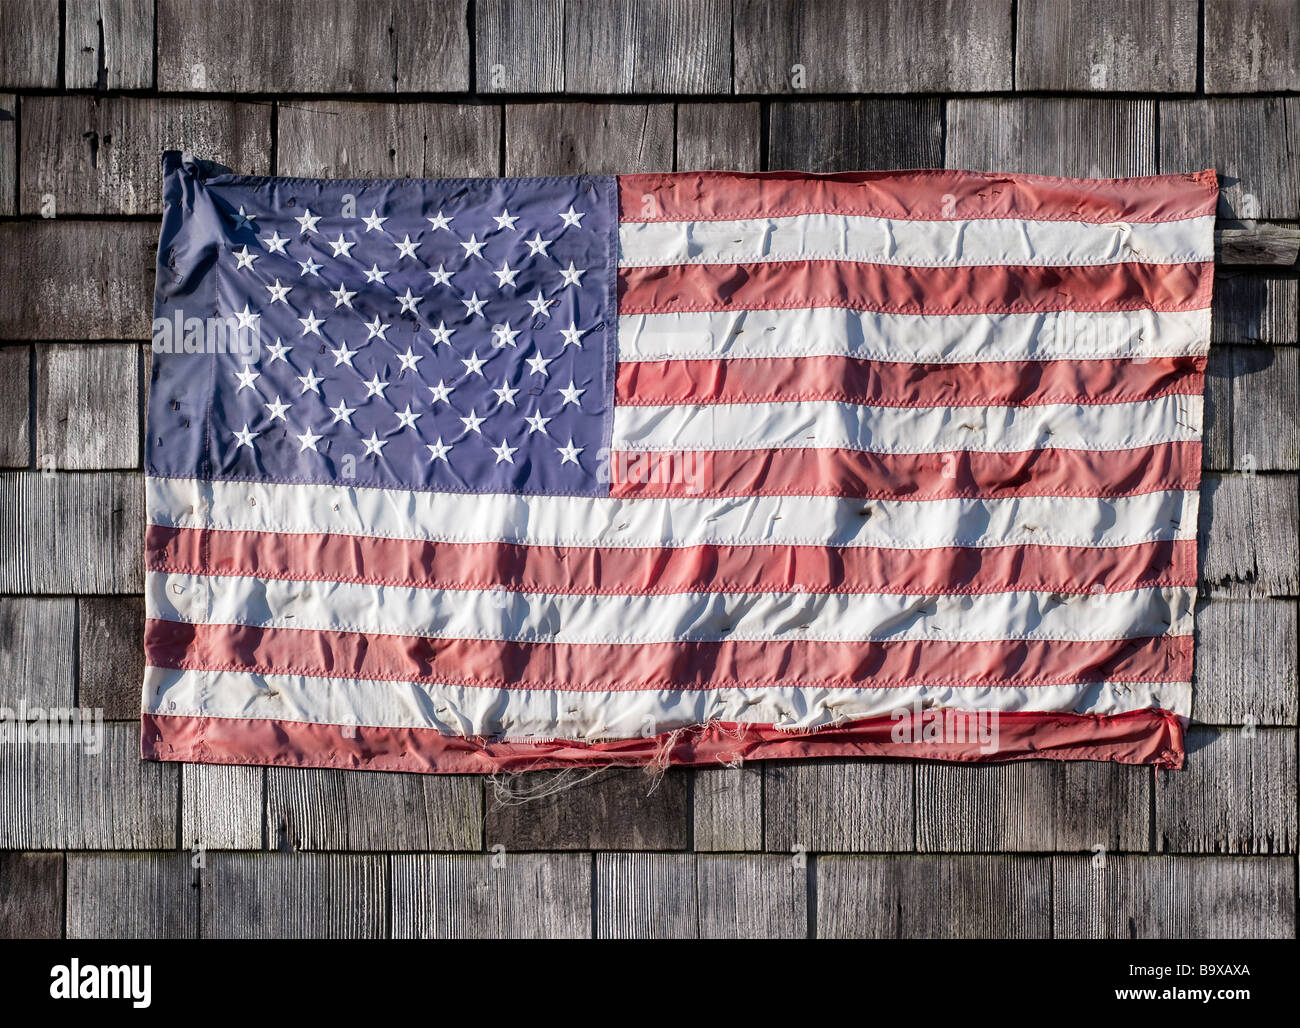 Worn American flag - Stock Image